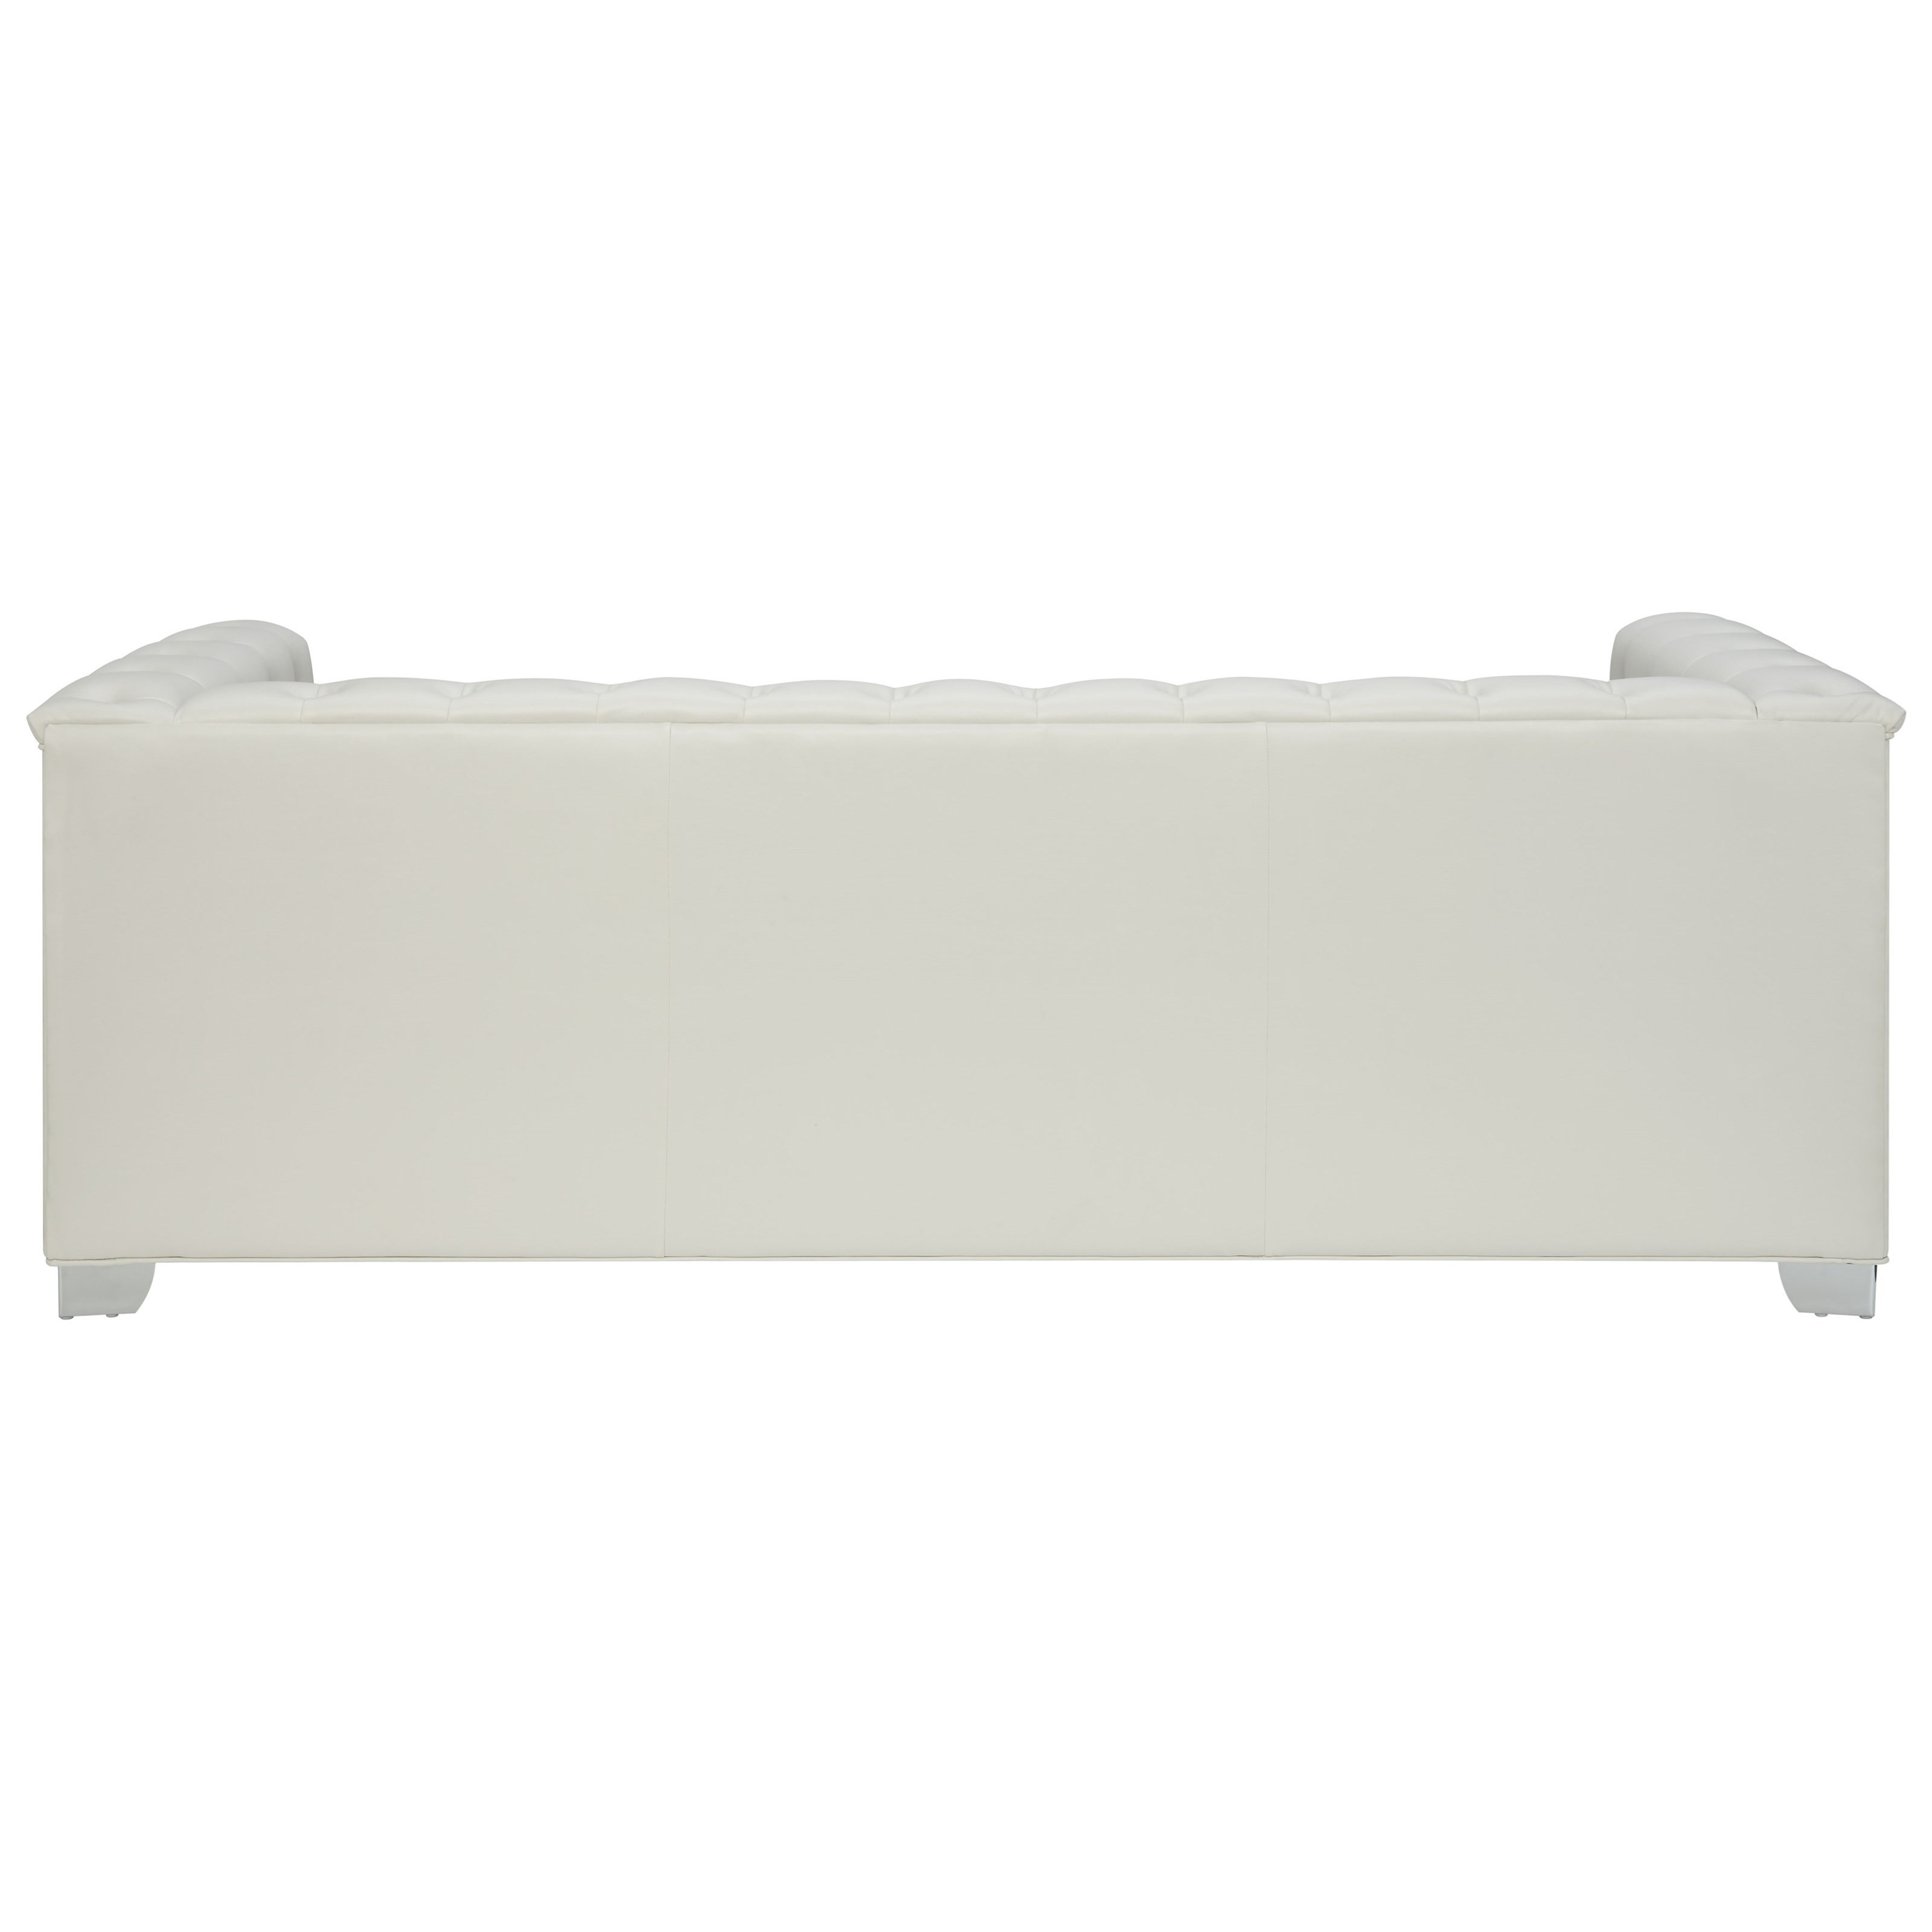 Chaviano Sofa In White Leatherette 505391 By Coaster W Options: Coaster Chaviano Low Profile Pearl White Tufted Sofa